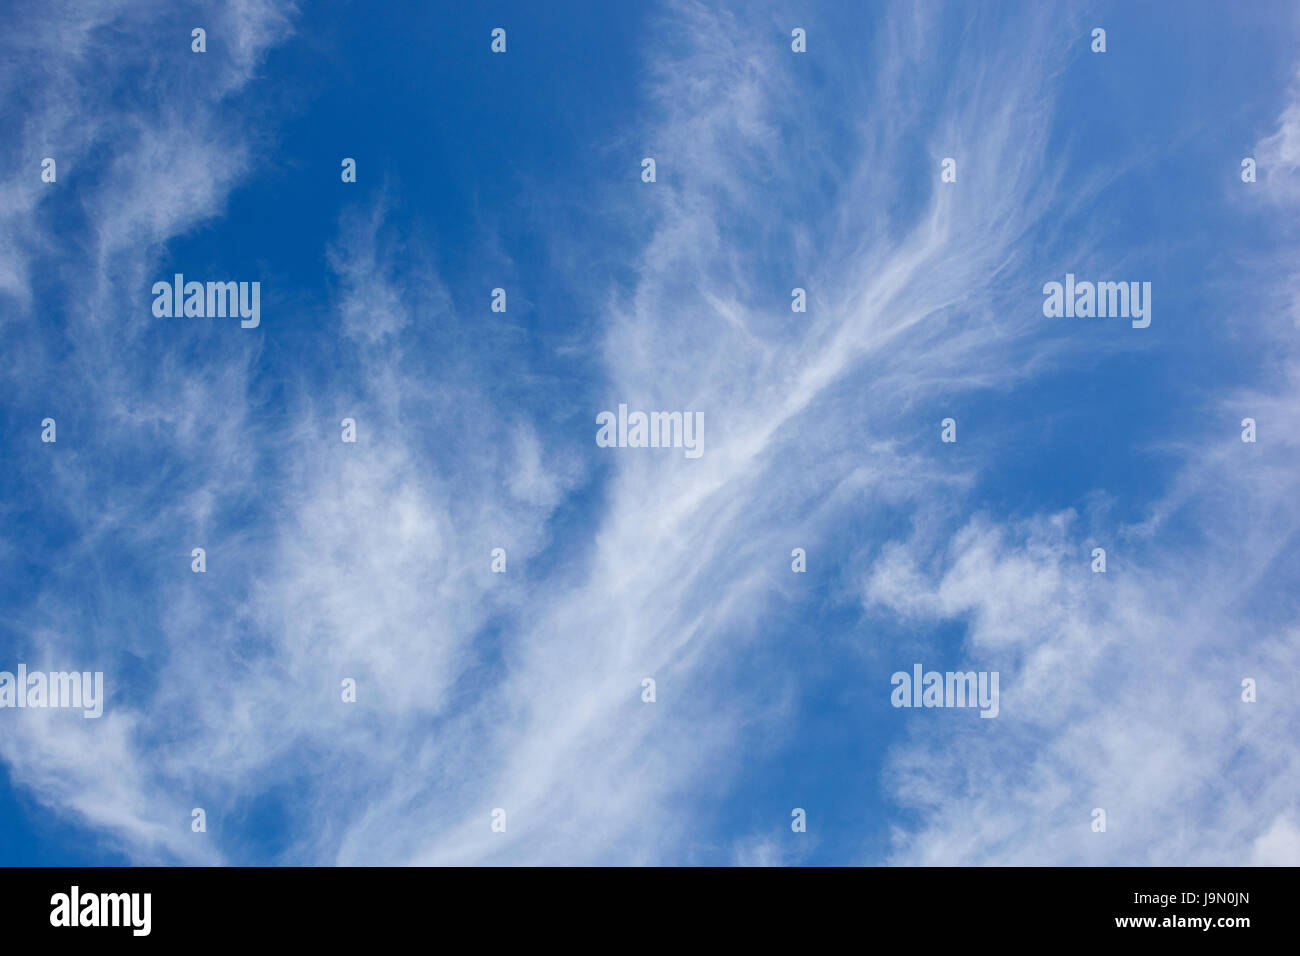 a blue sky background image with white wispy cloud in summer - Stock Image